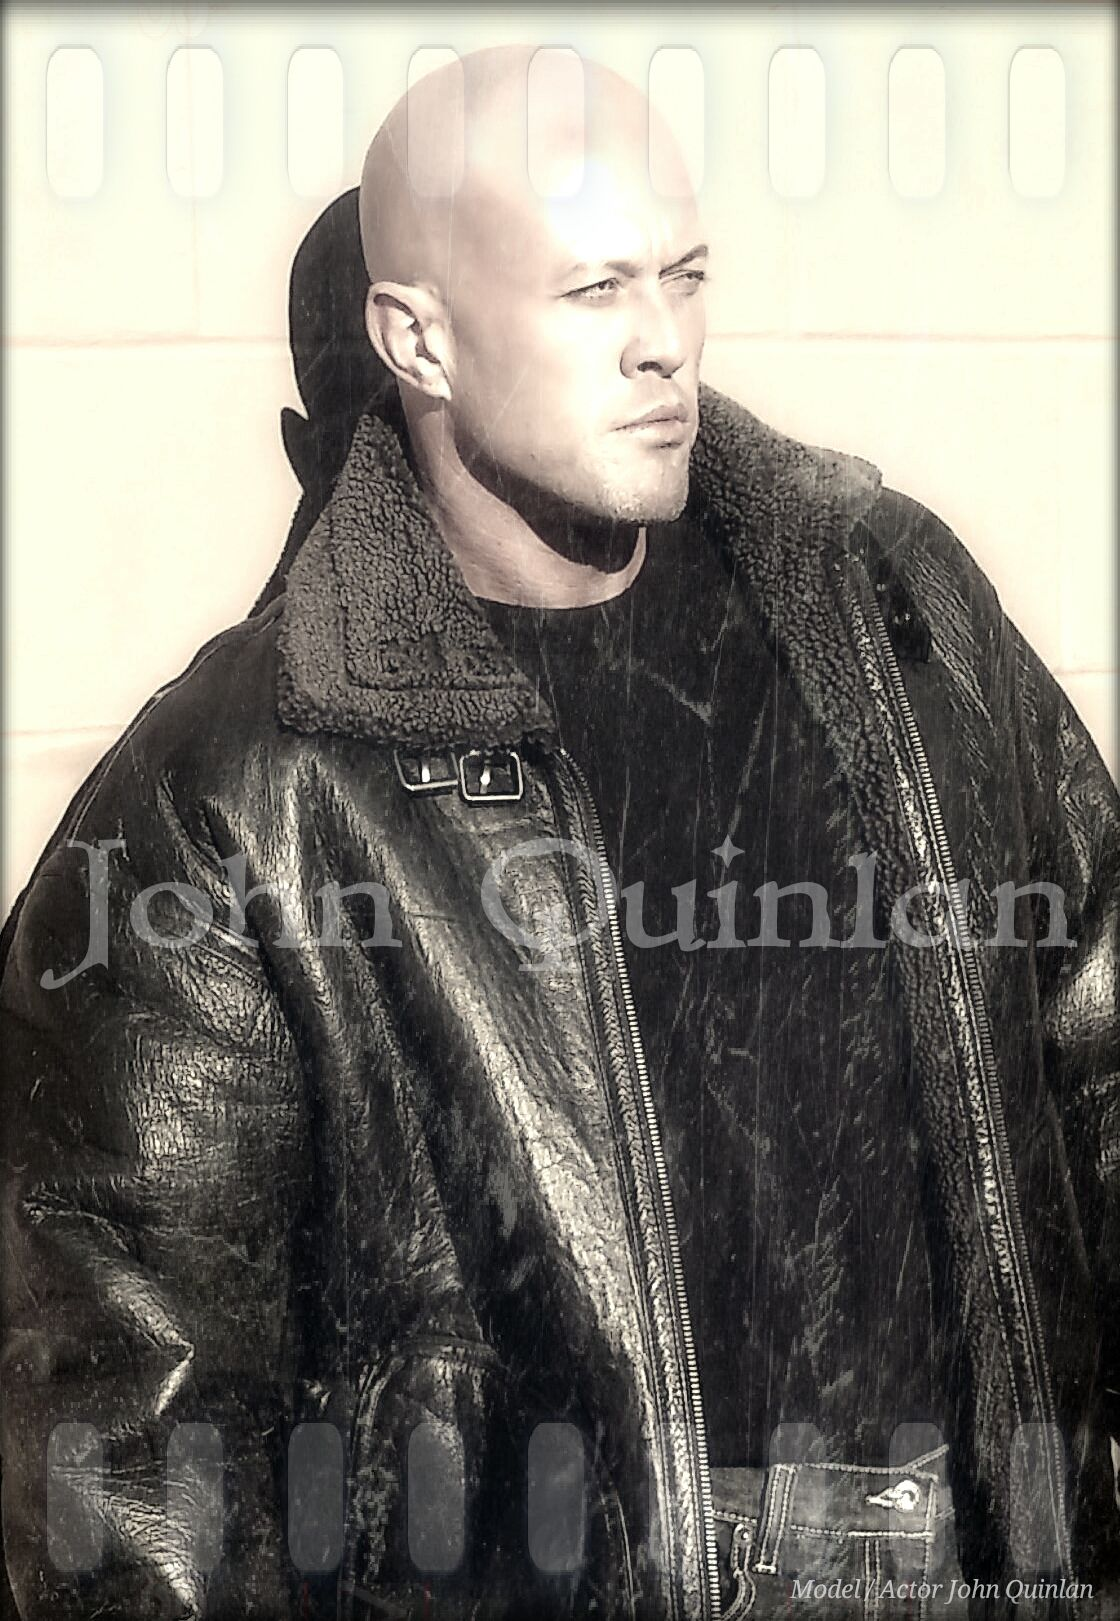 Physique Romance Cover Model & Actor John Joseph Quinlan Calvin Klein #JohnQuinlan